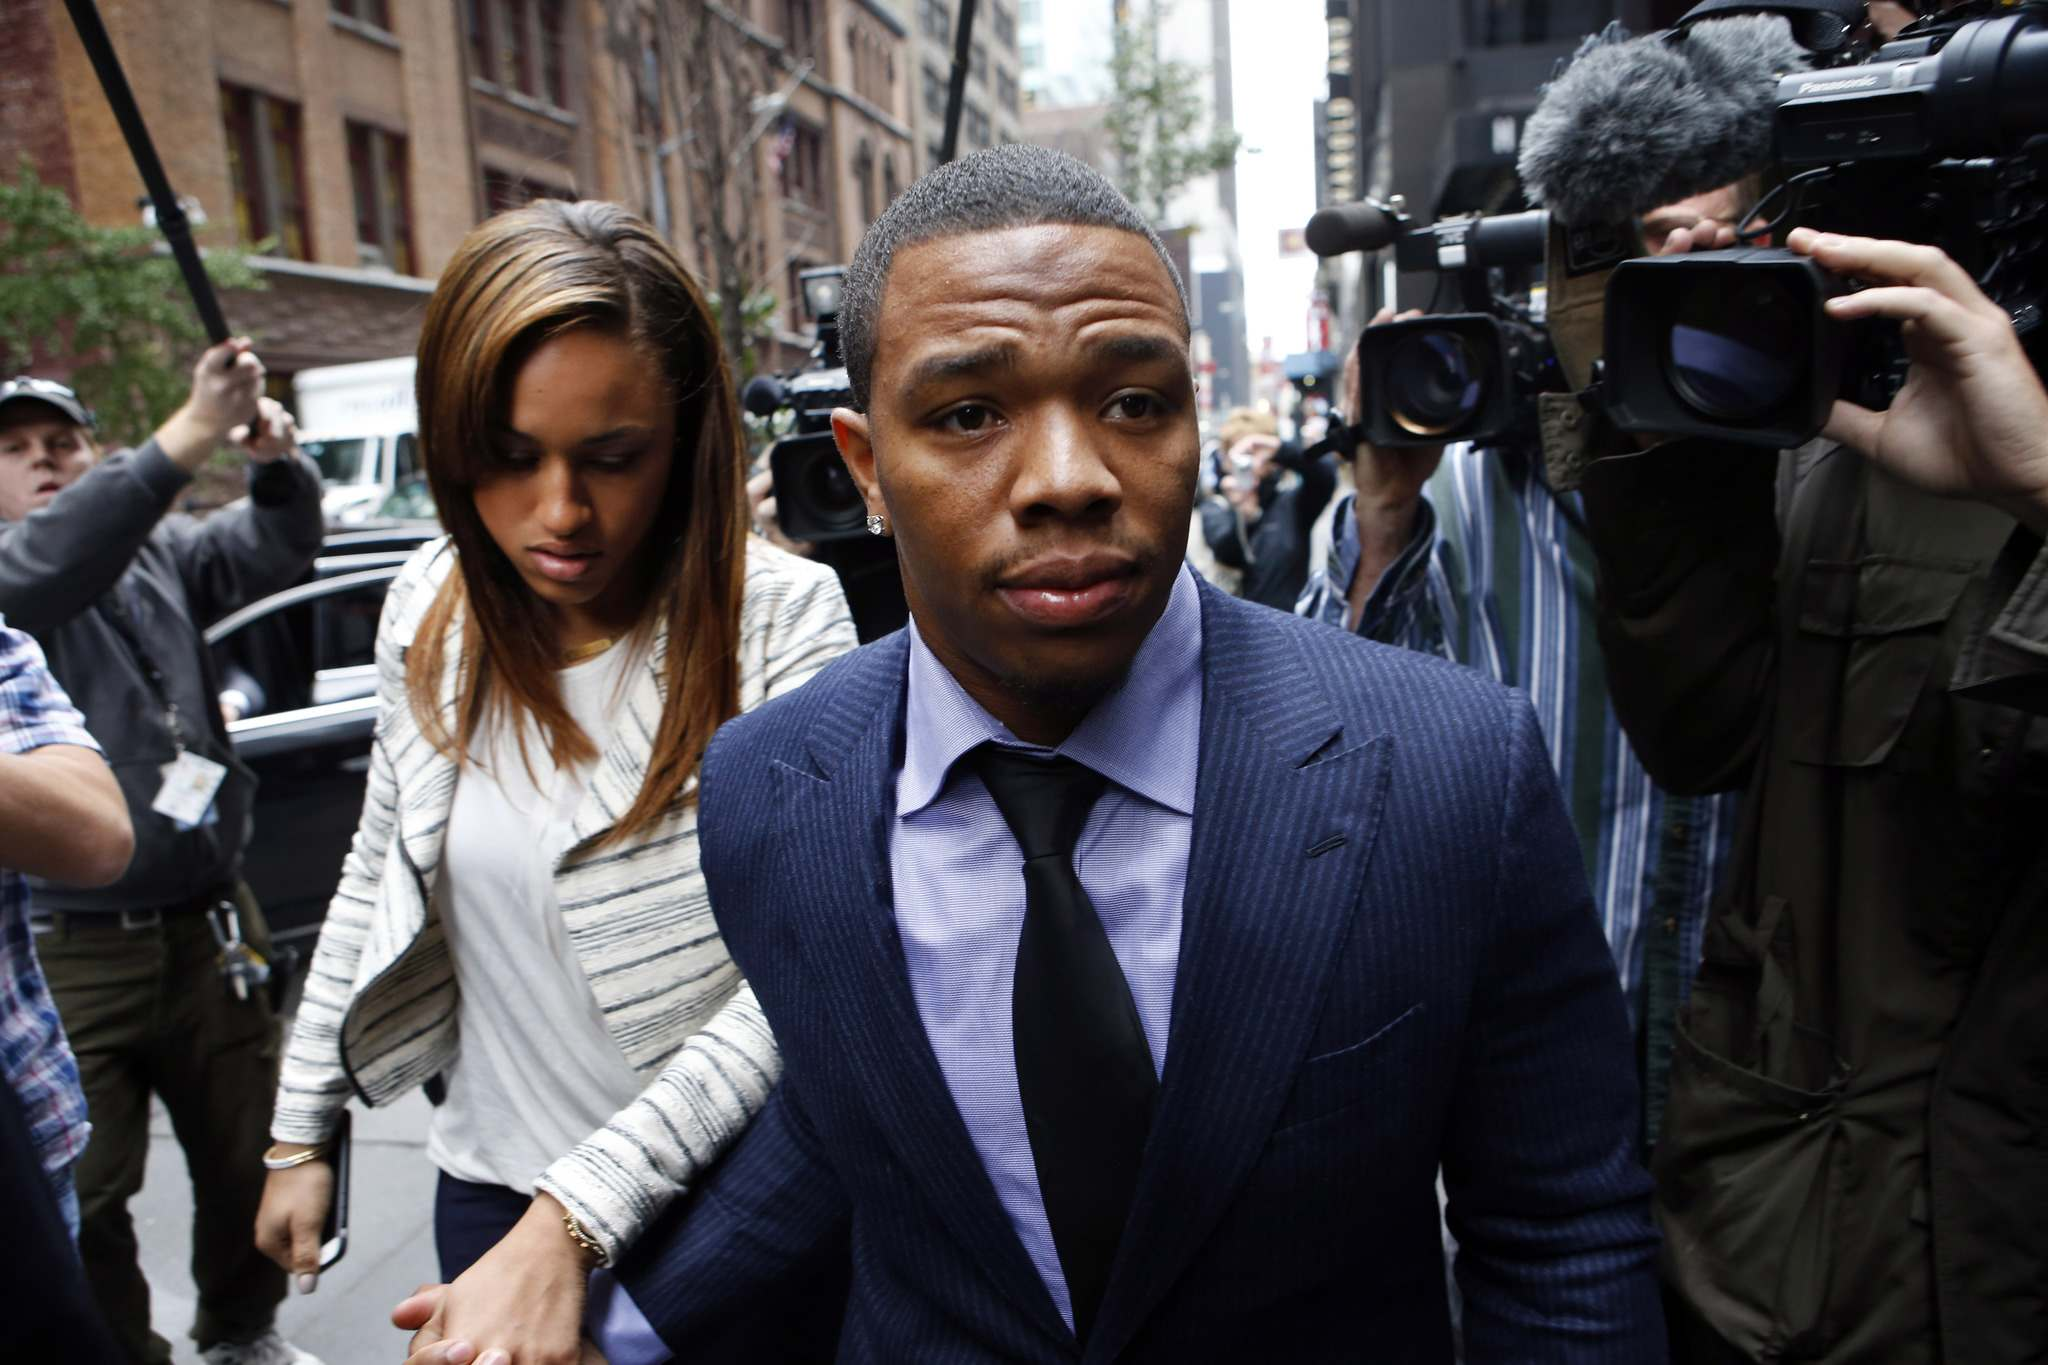 Jason DeCrow / The Associated Press Files </p><p>When Ray Rice was caught on video knocking then-girlfriend Janay Palmer unconscious, it changed the way pro football organizations viewed gender-based violence.</p></p>